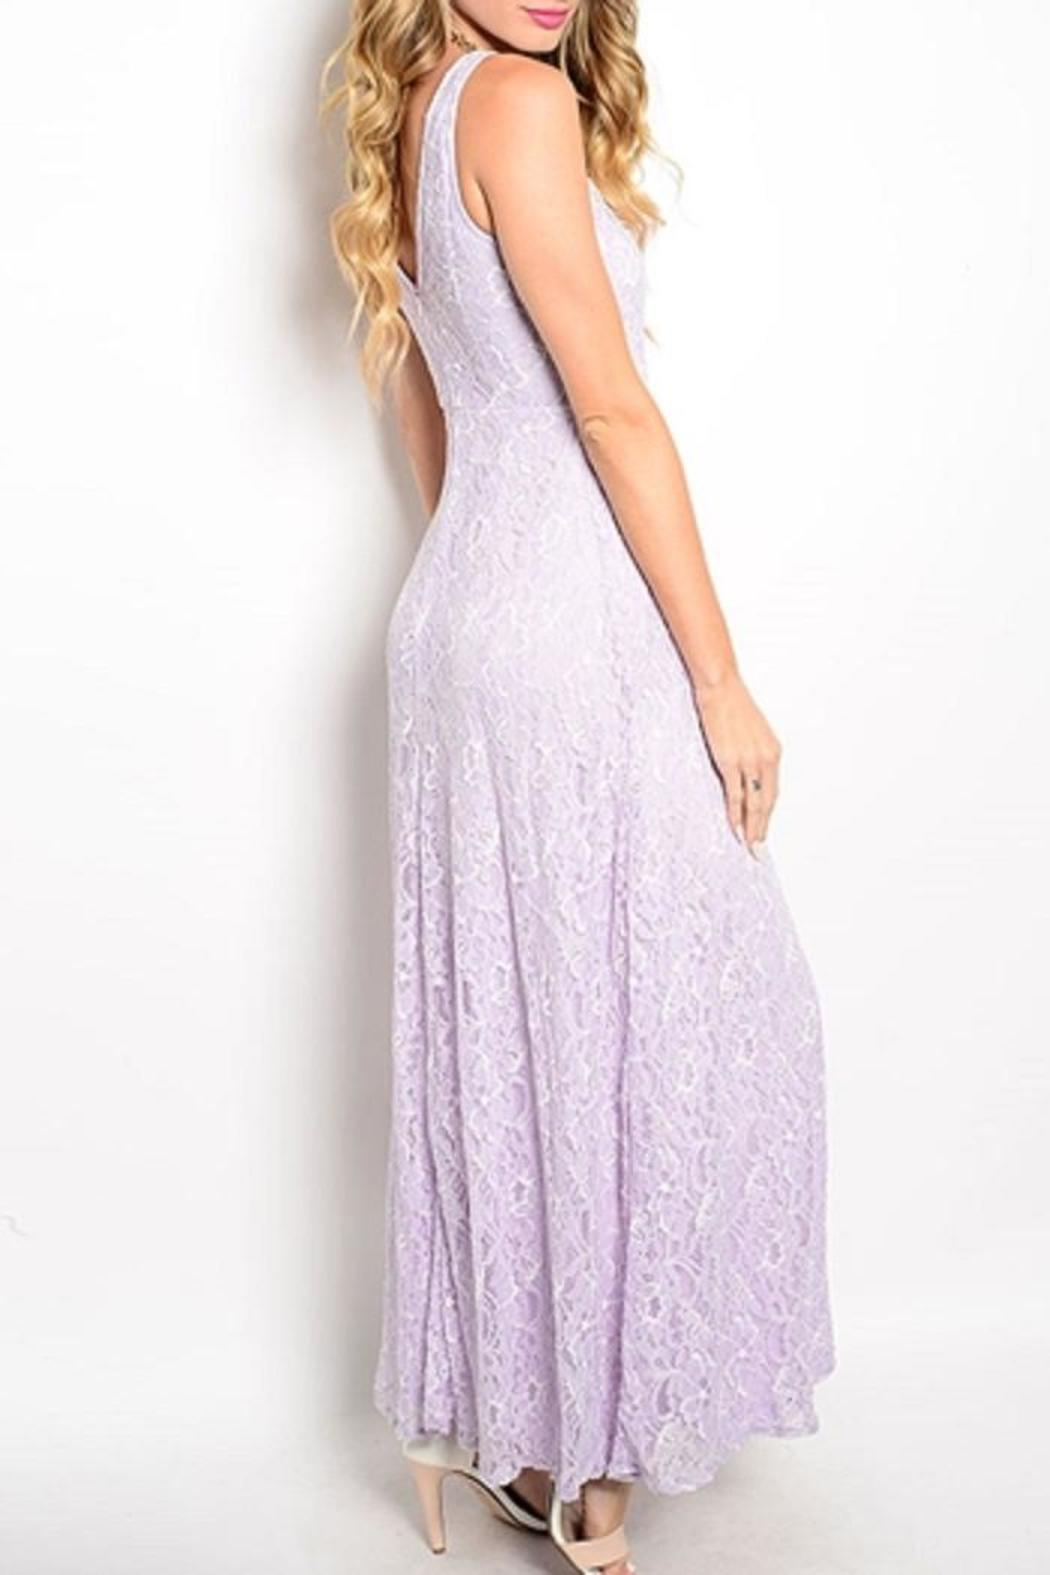 Adore Clothes Amp More Lavender Lace Dress From Washington